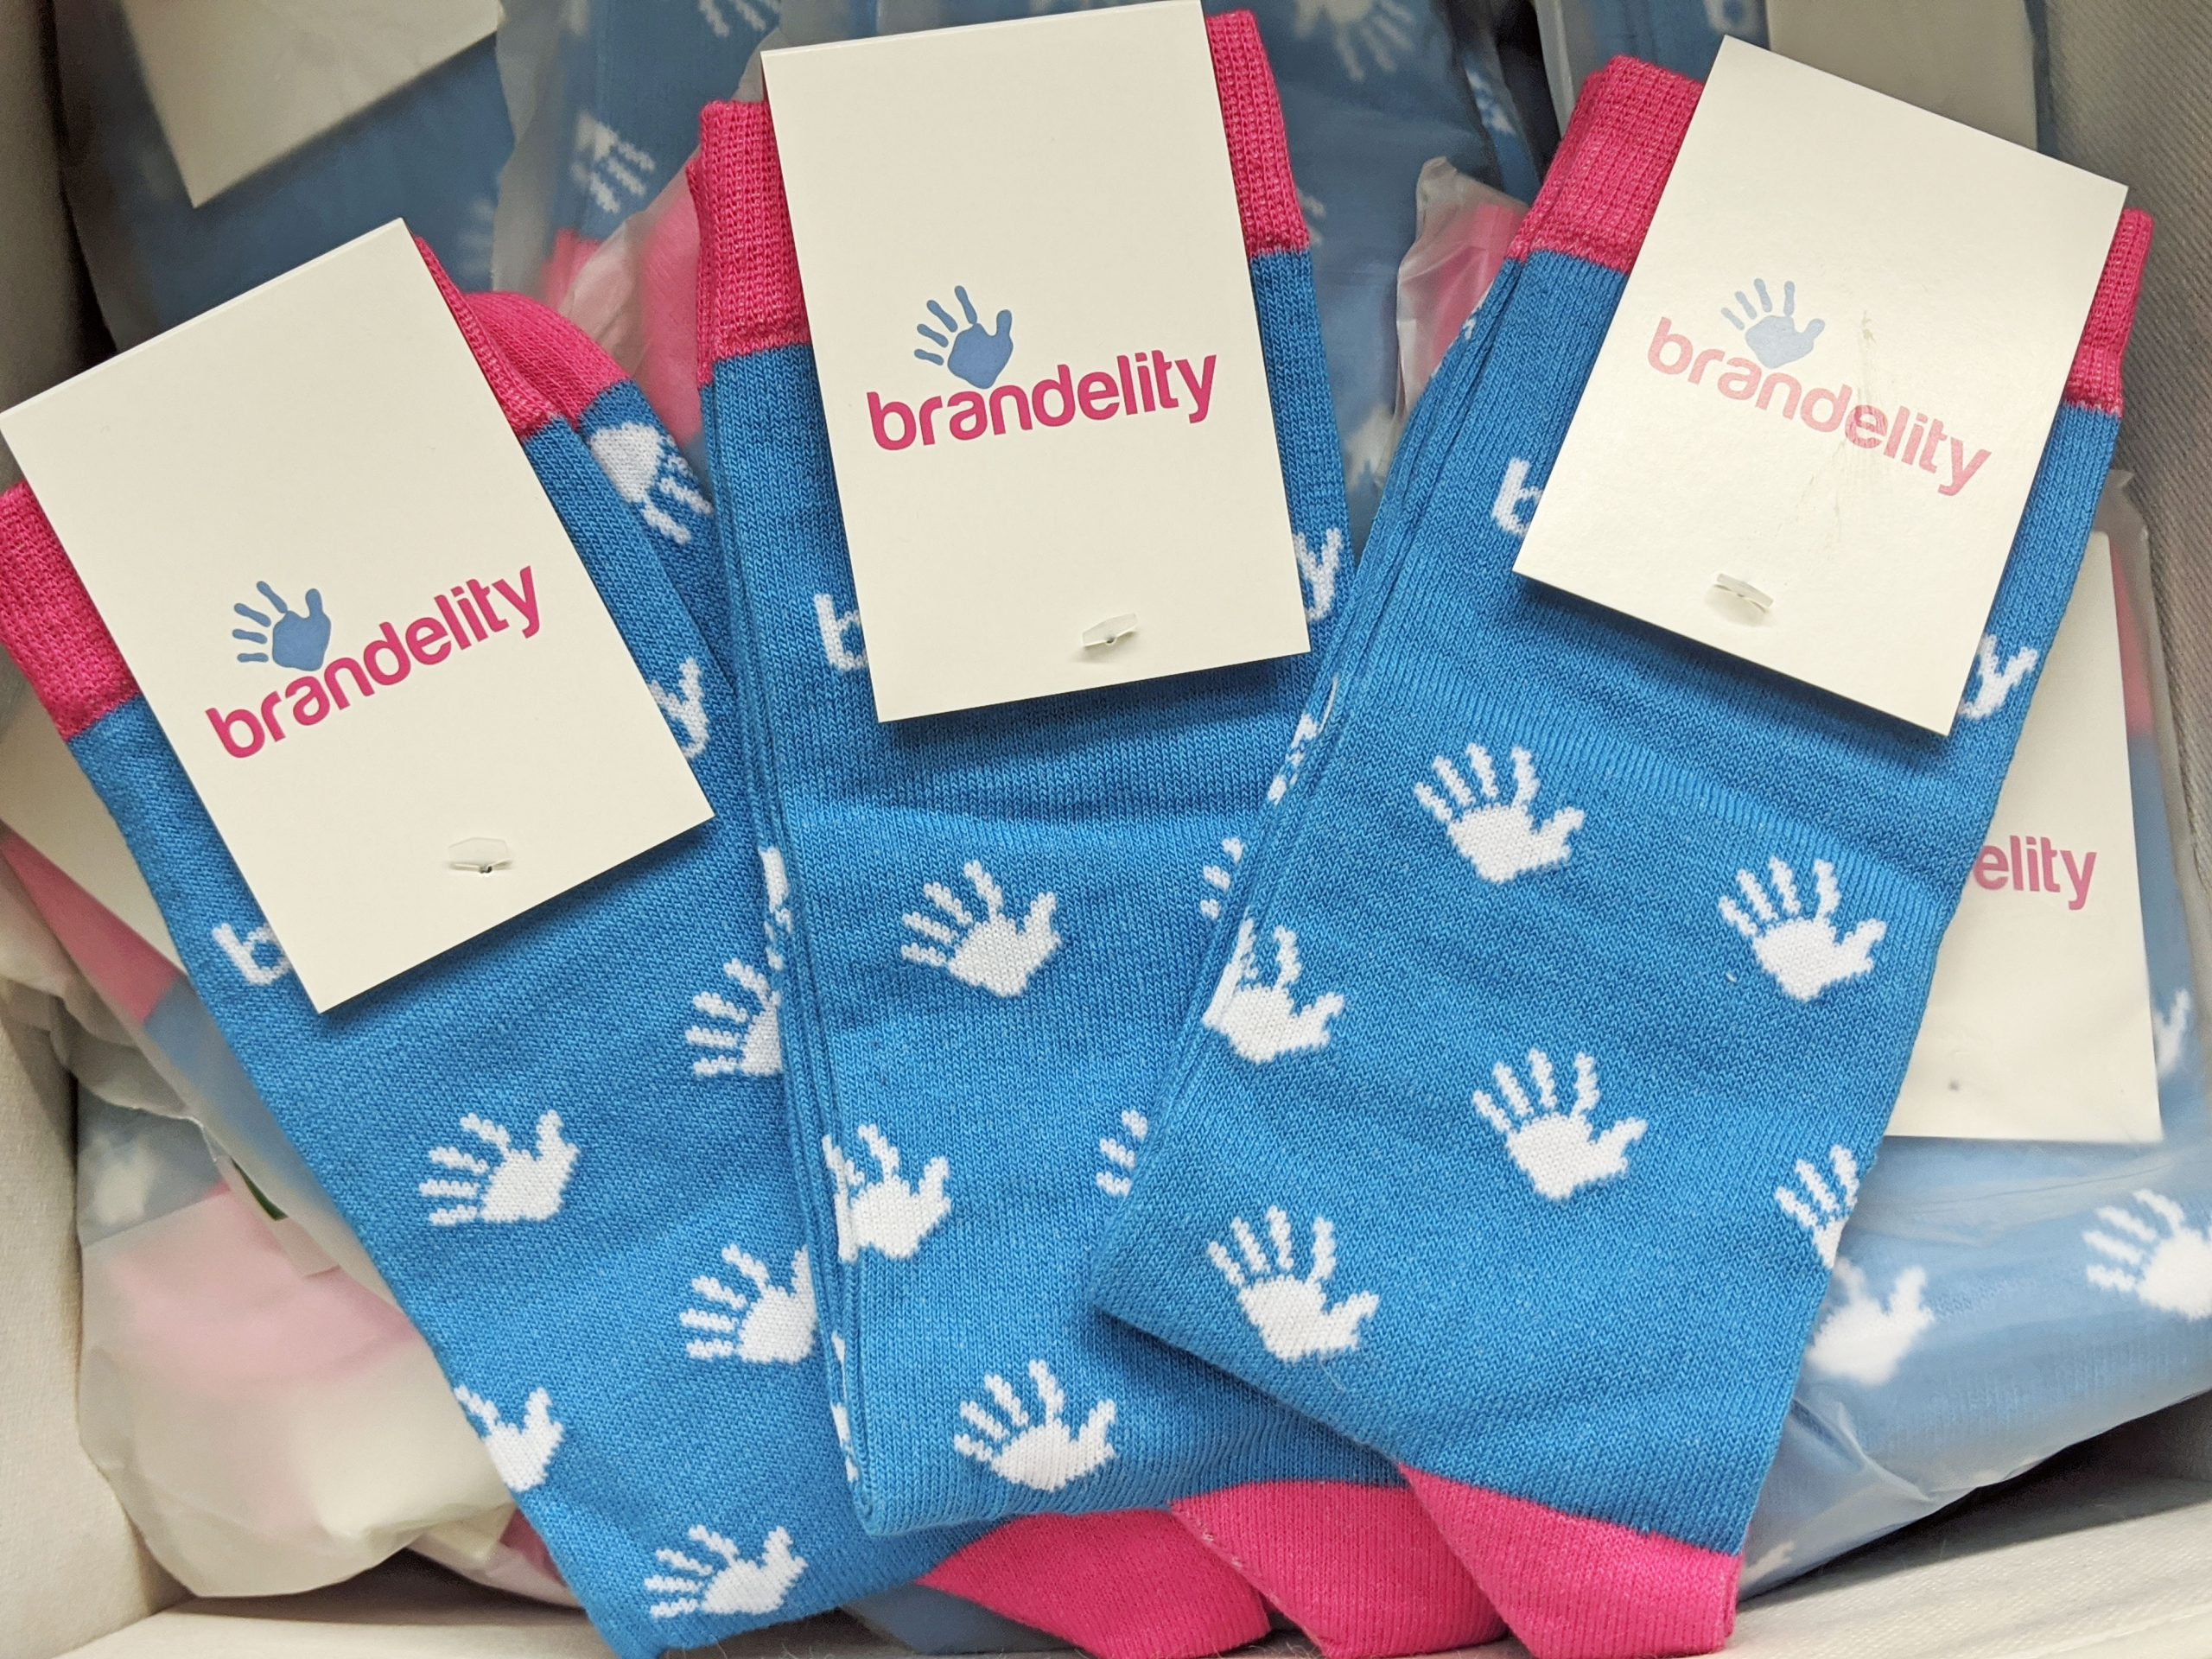 Brandelity promotional socks